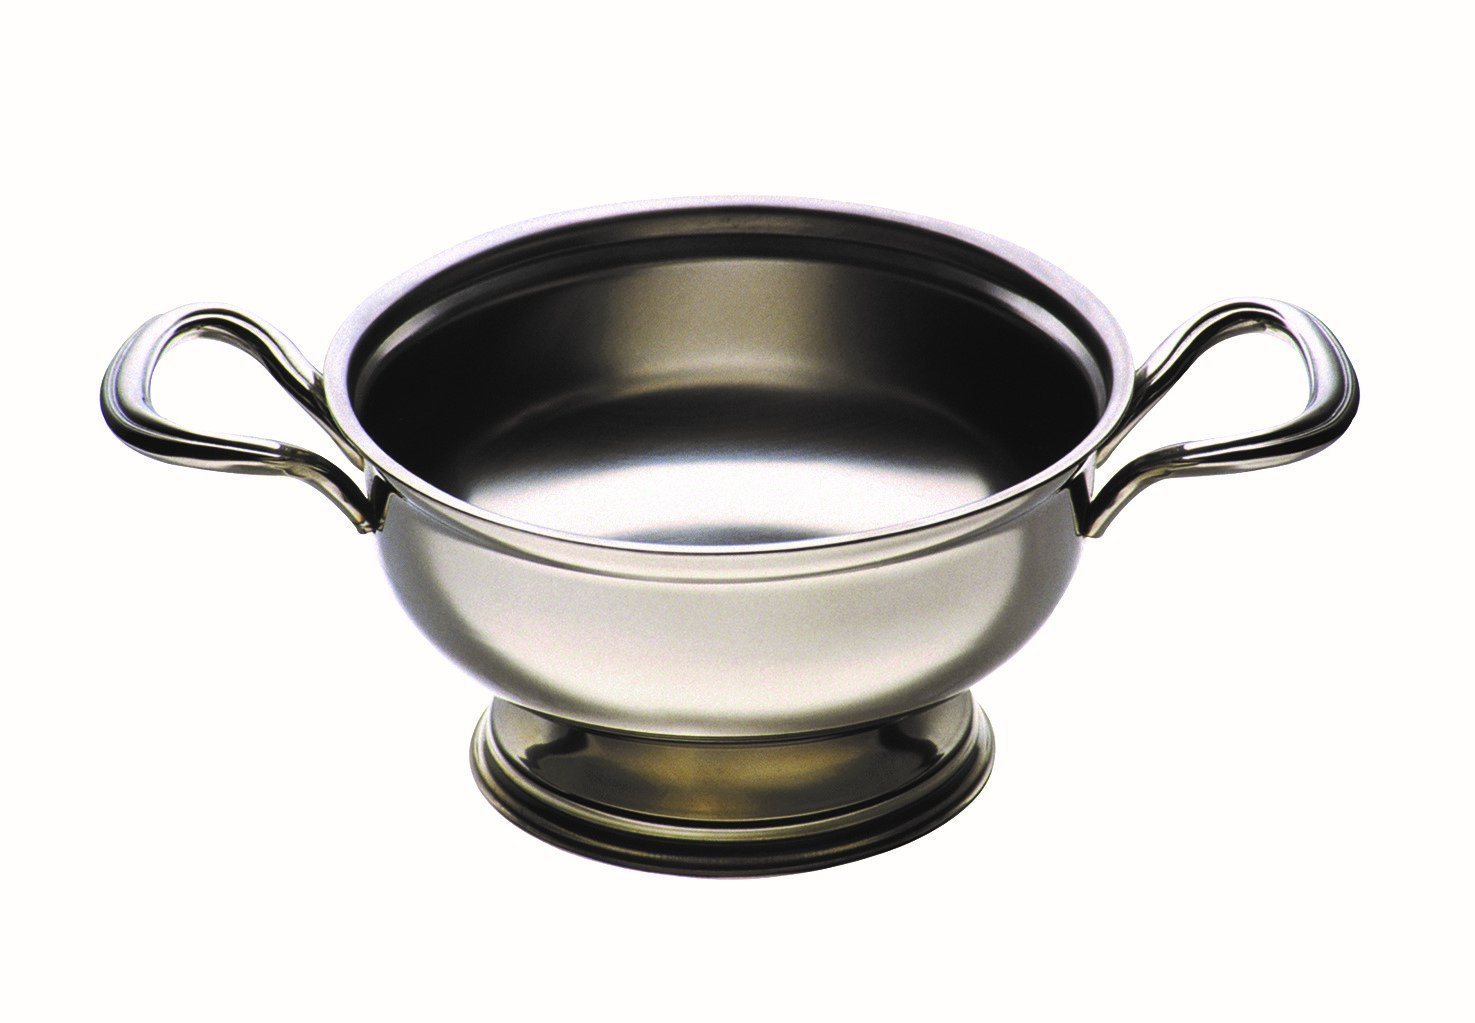 Mepra Palace Soup Tureen without Lid, 18cm